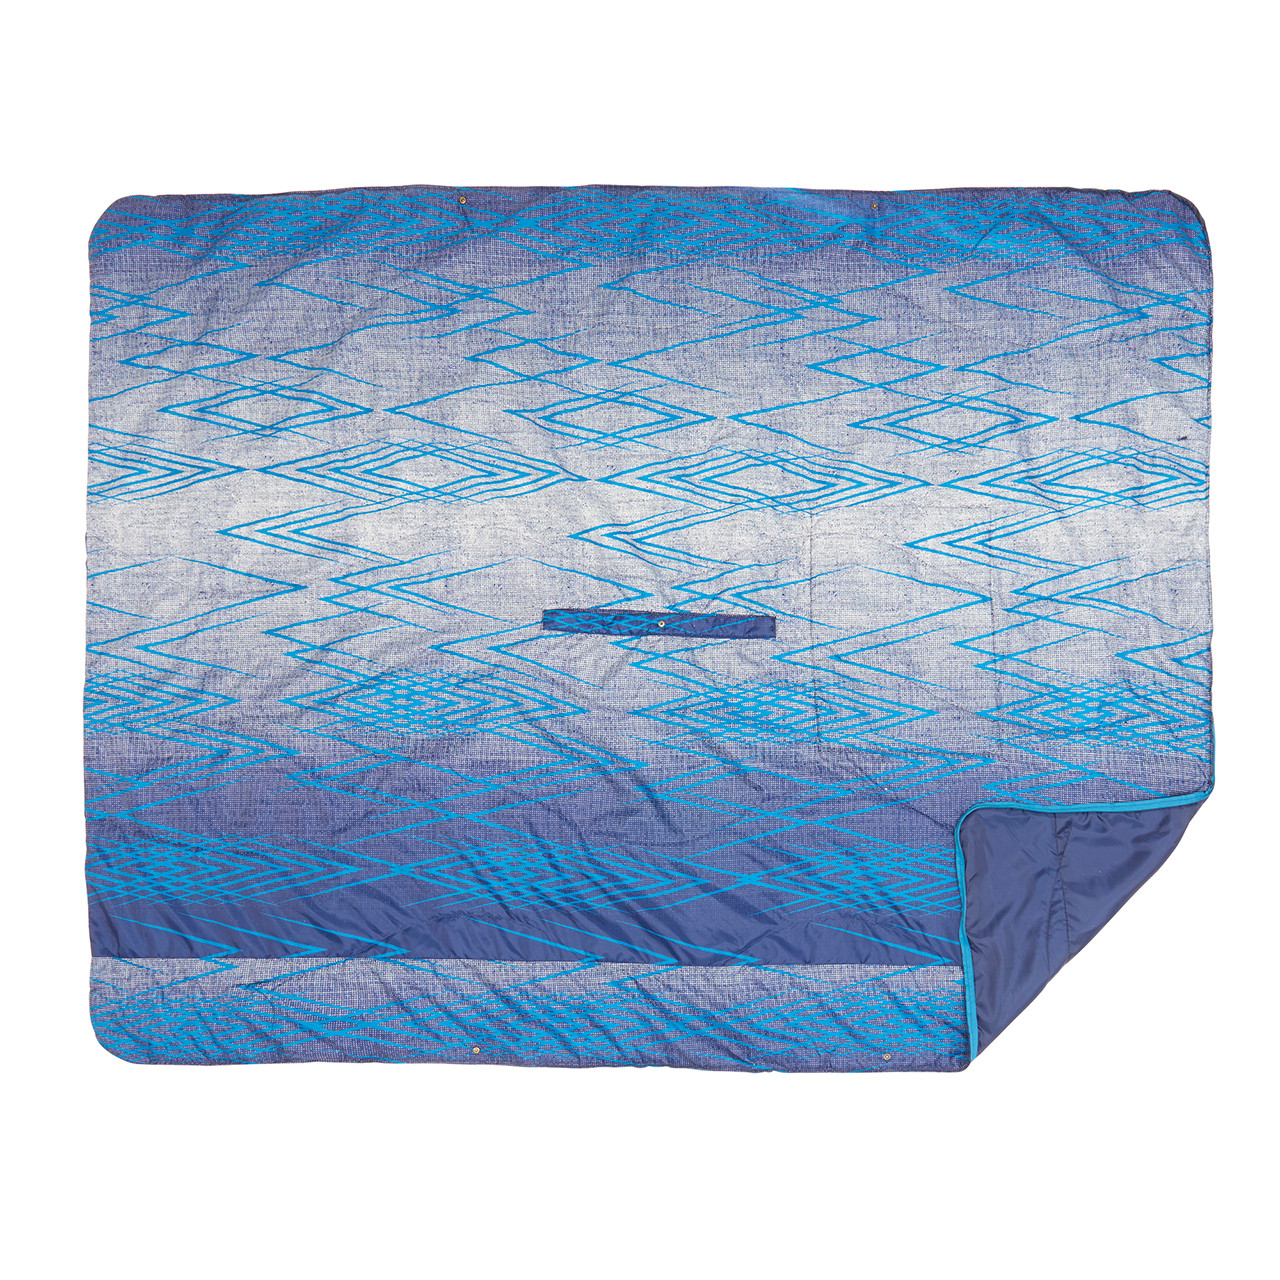 Top view of the Wenzel Everett All-In-One Poncho with one corner slightly folded over showing the blue underside